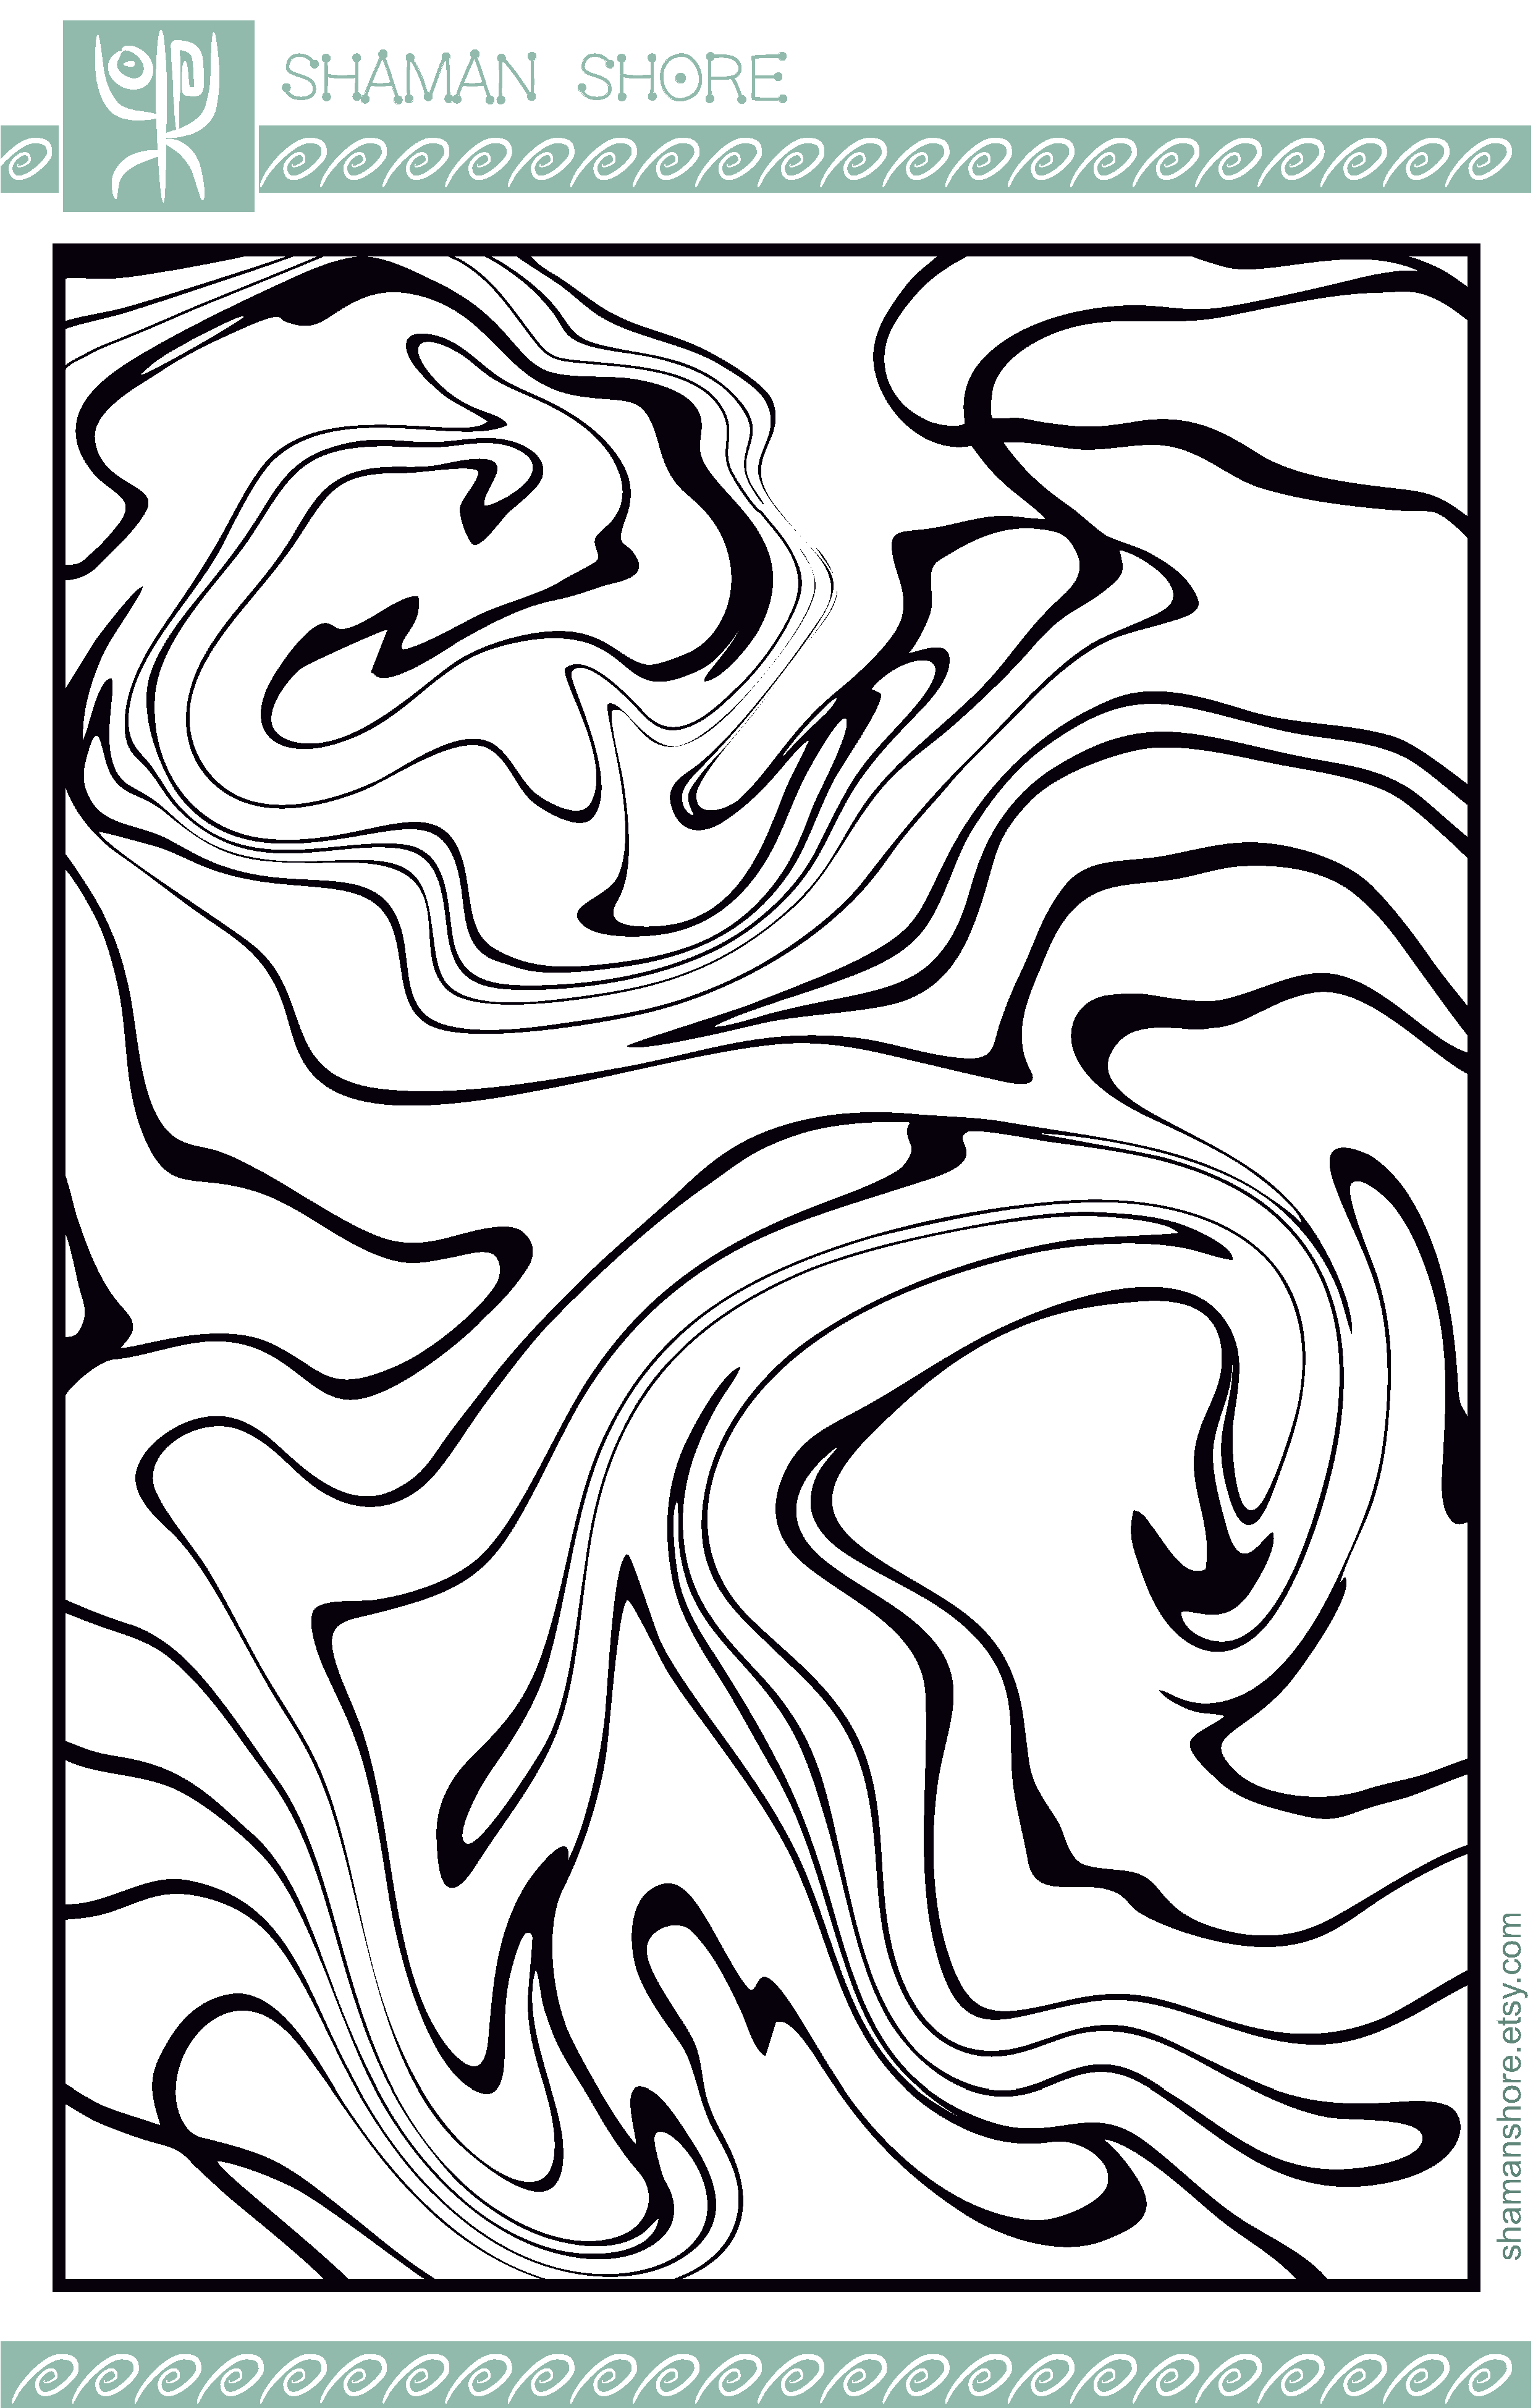 PDF Adult Coloring Book, Abstract Adult Digital Coloring Pages Pdf